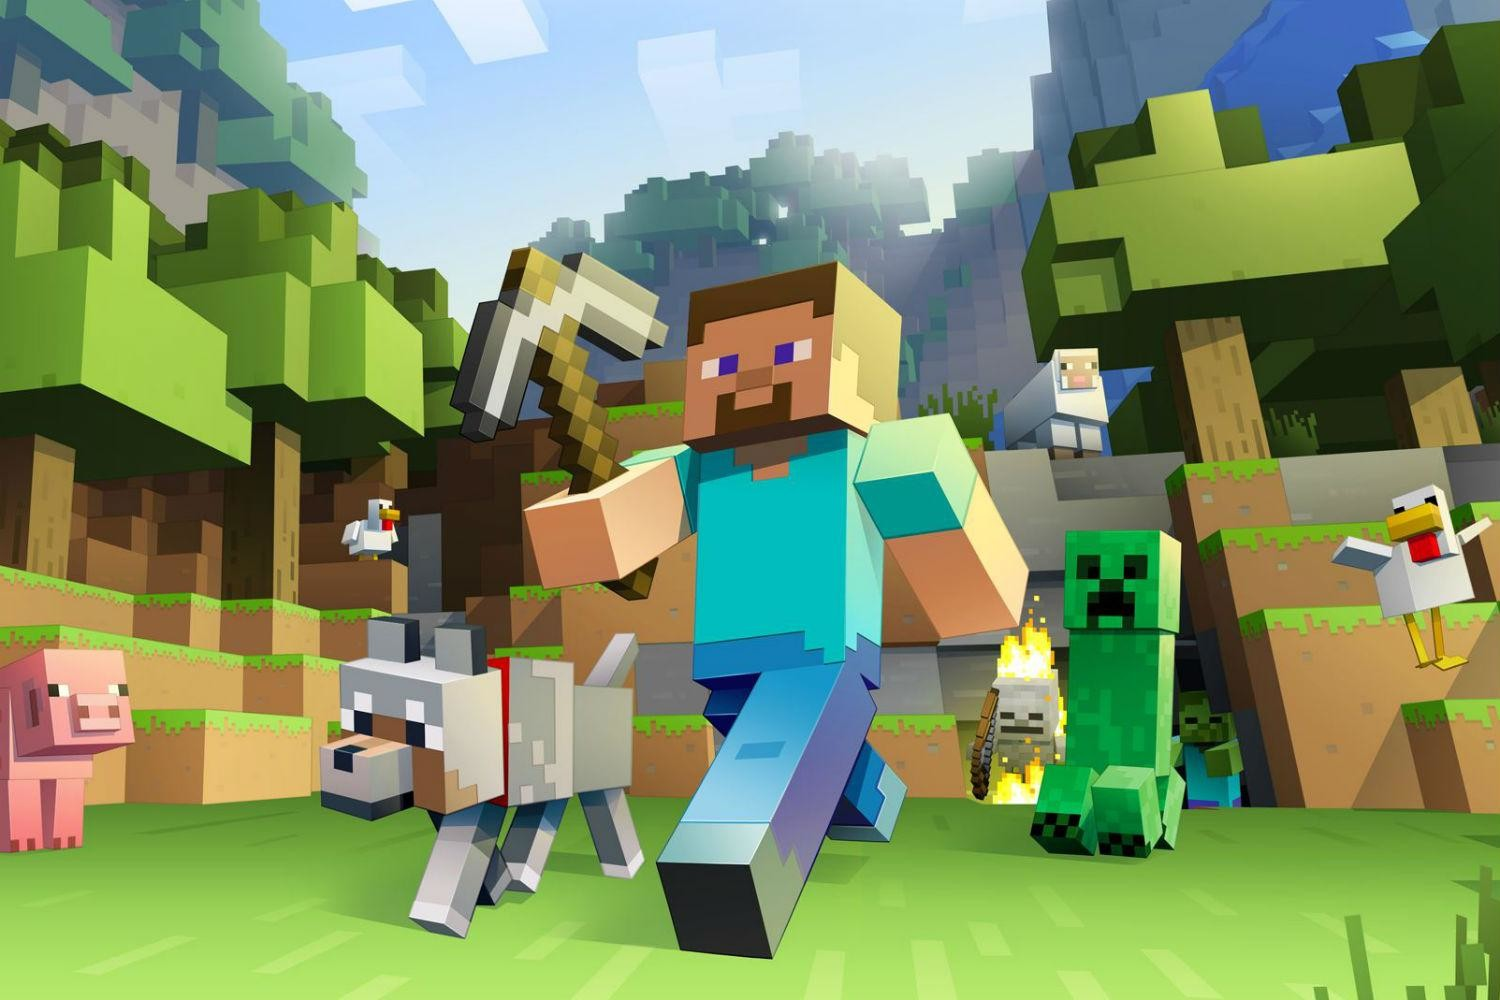 Microsoft Supports Youth Coding With Minecraft Themed Tutorial Digital Trends